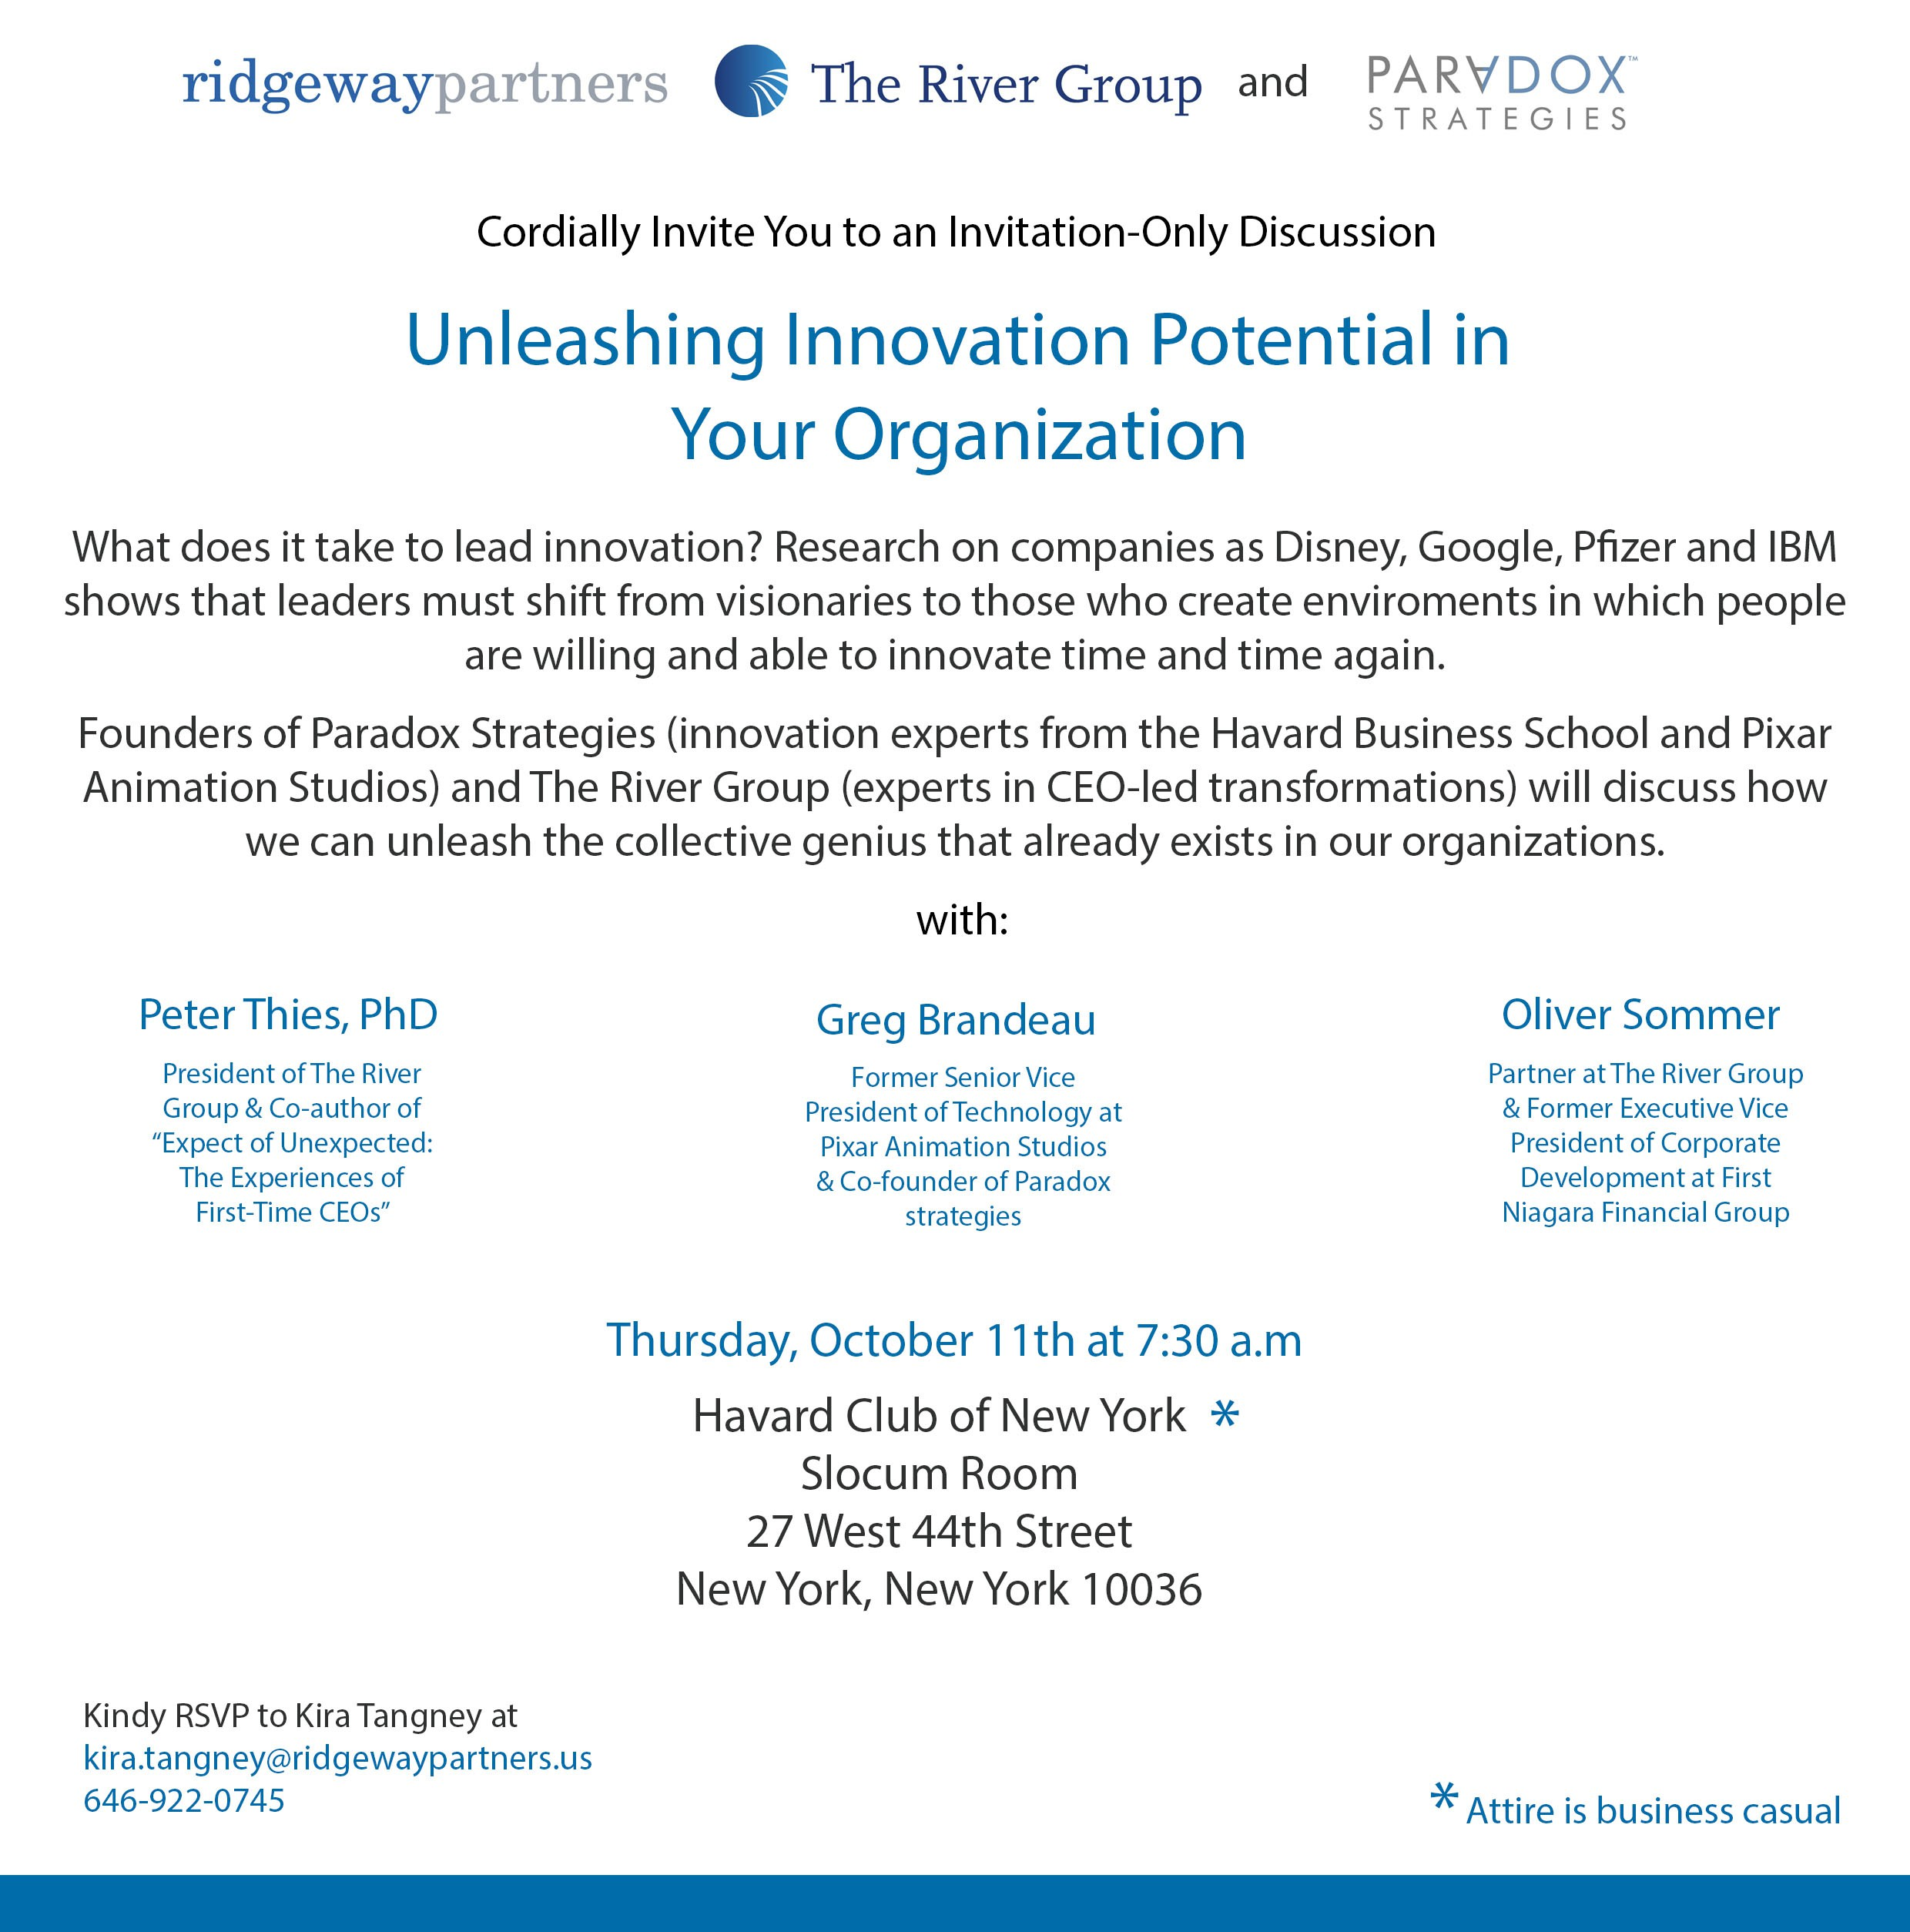 Breakfast Event Invitation - Unleashing Innovation Potential in Your Organization